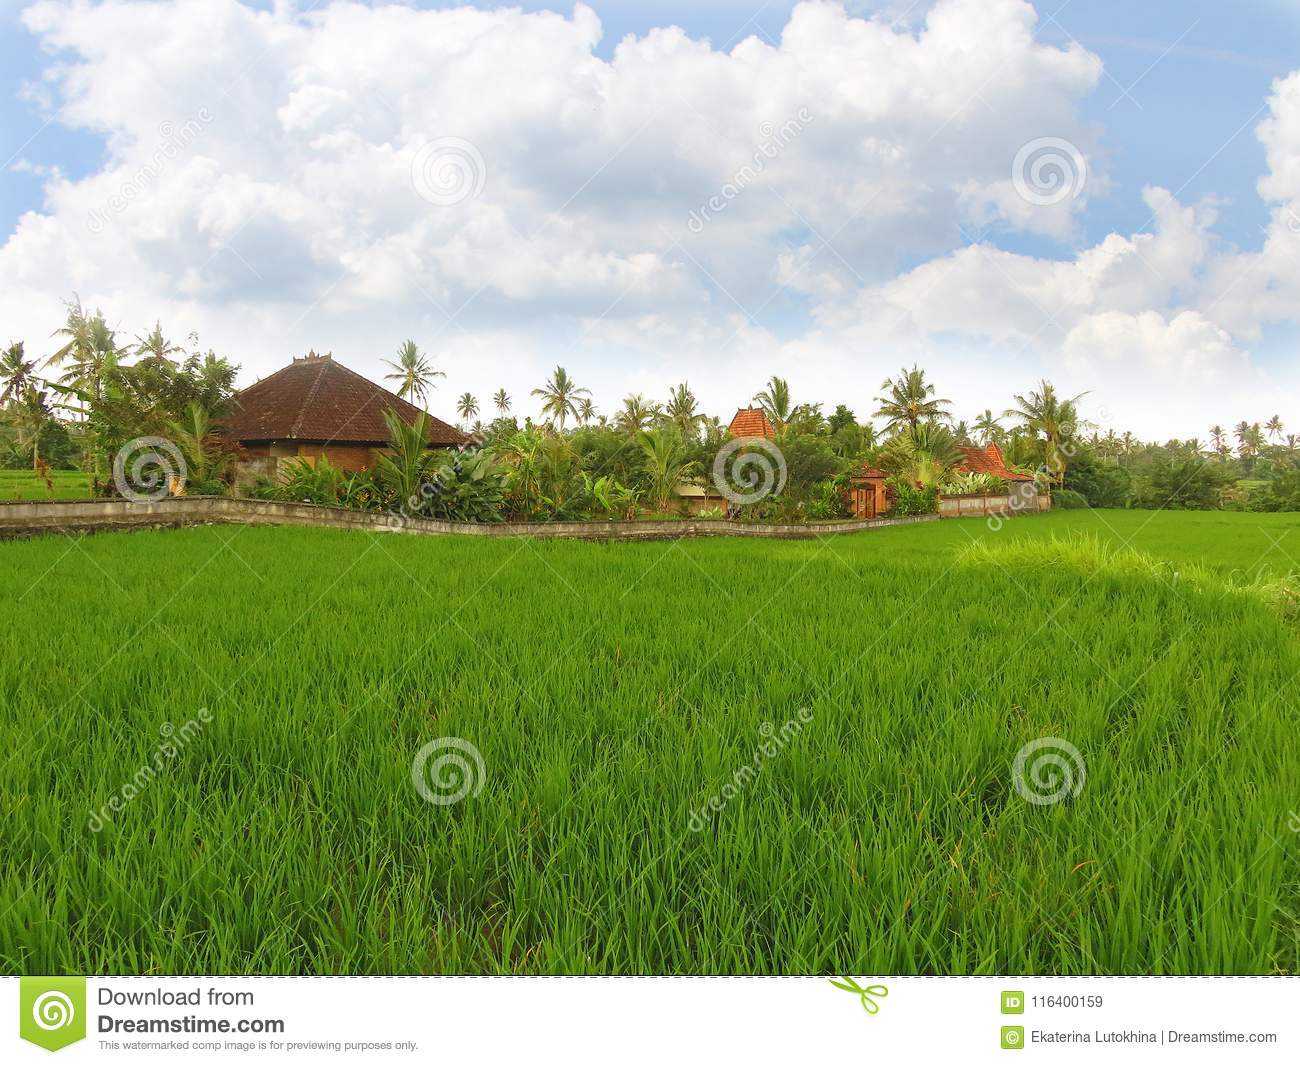 Houses and rice fields in Ubud, Bali